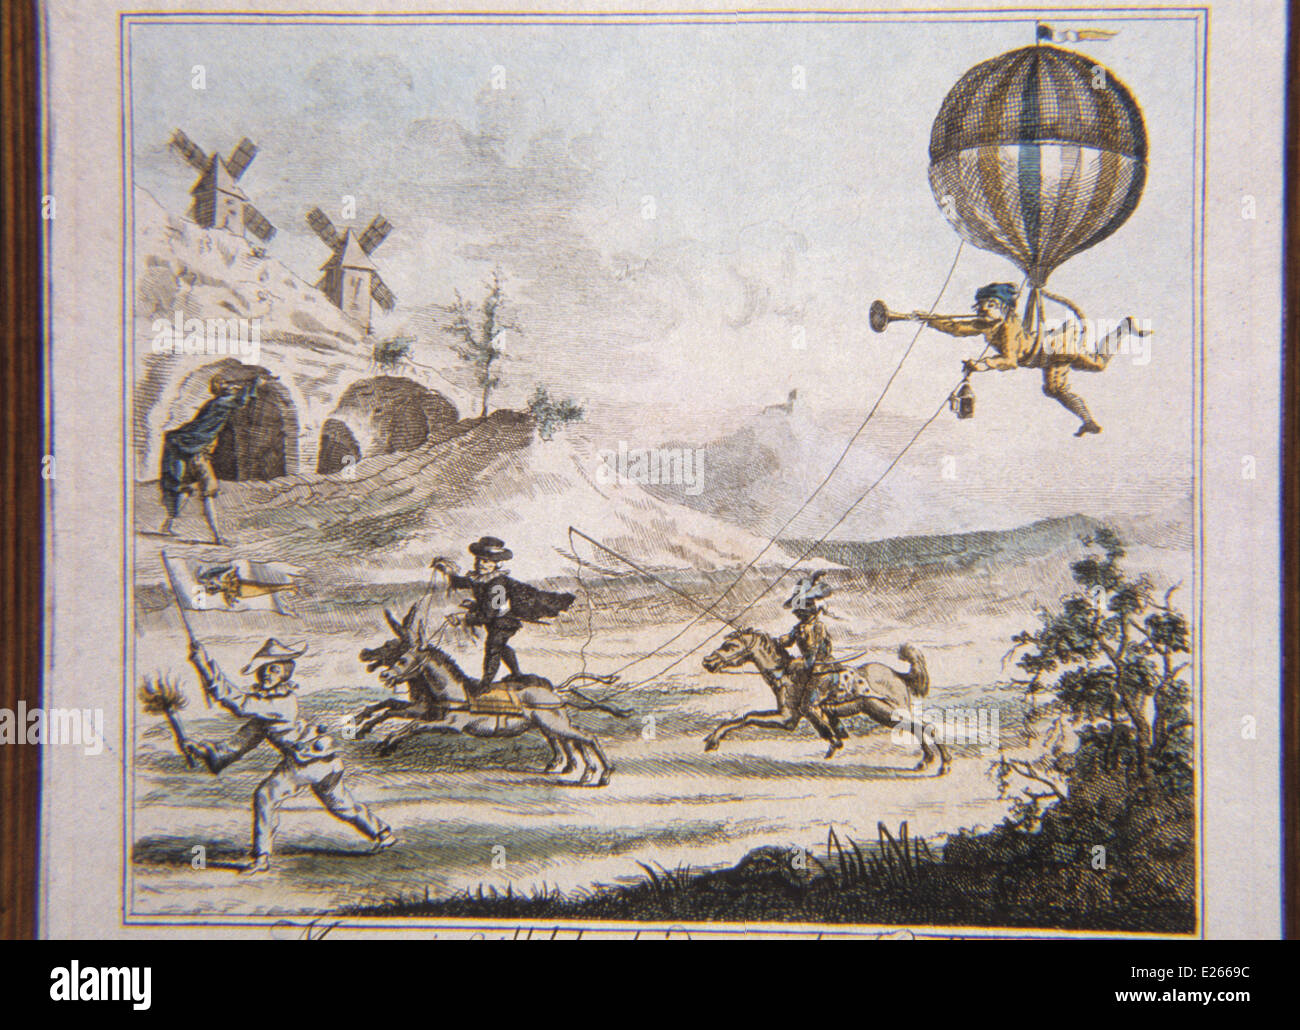 satirical lithograph of 18th century - Stock Image